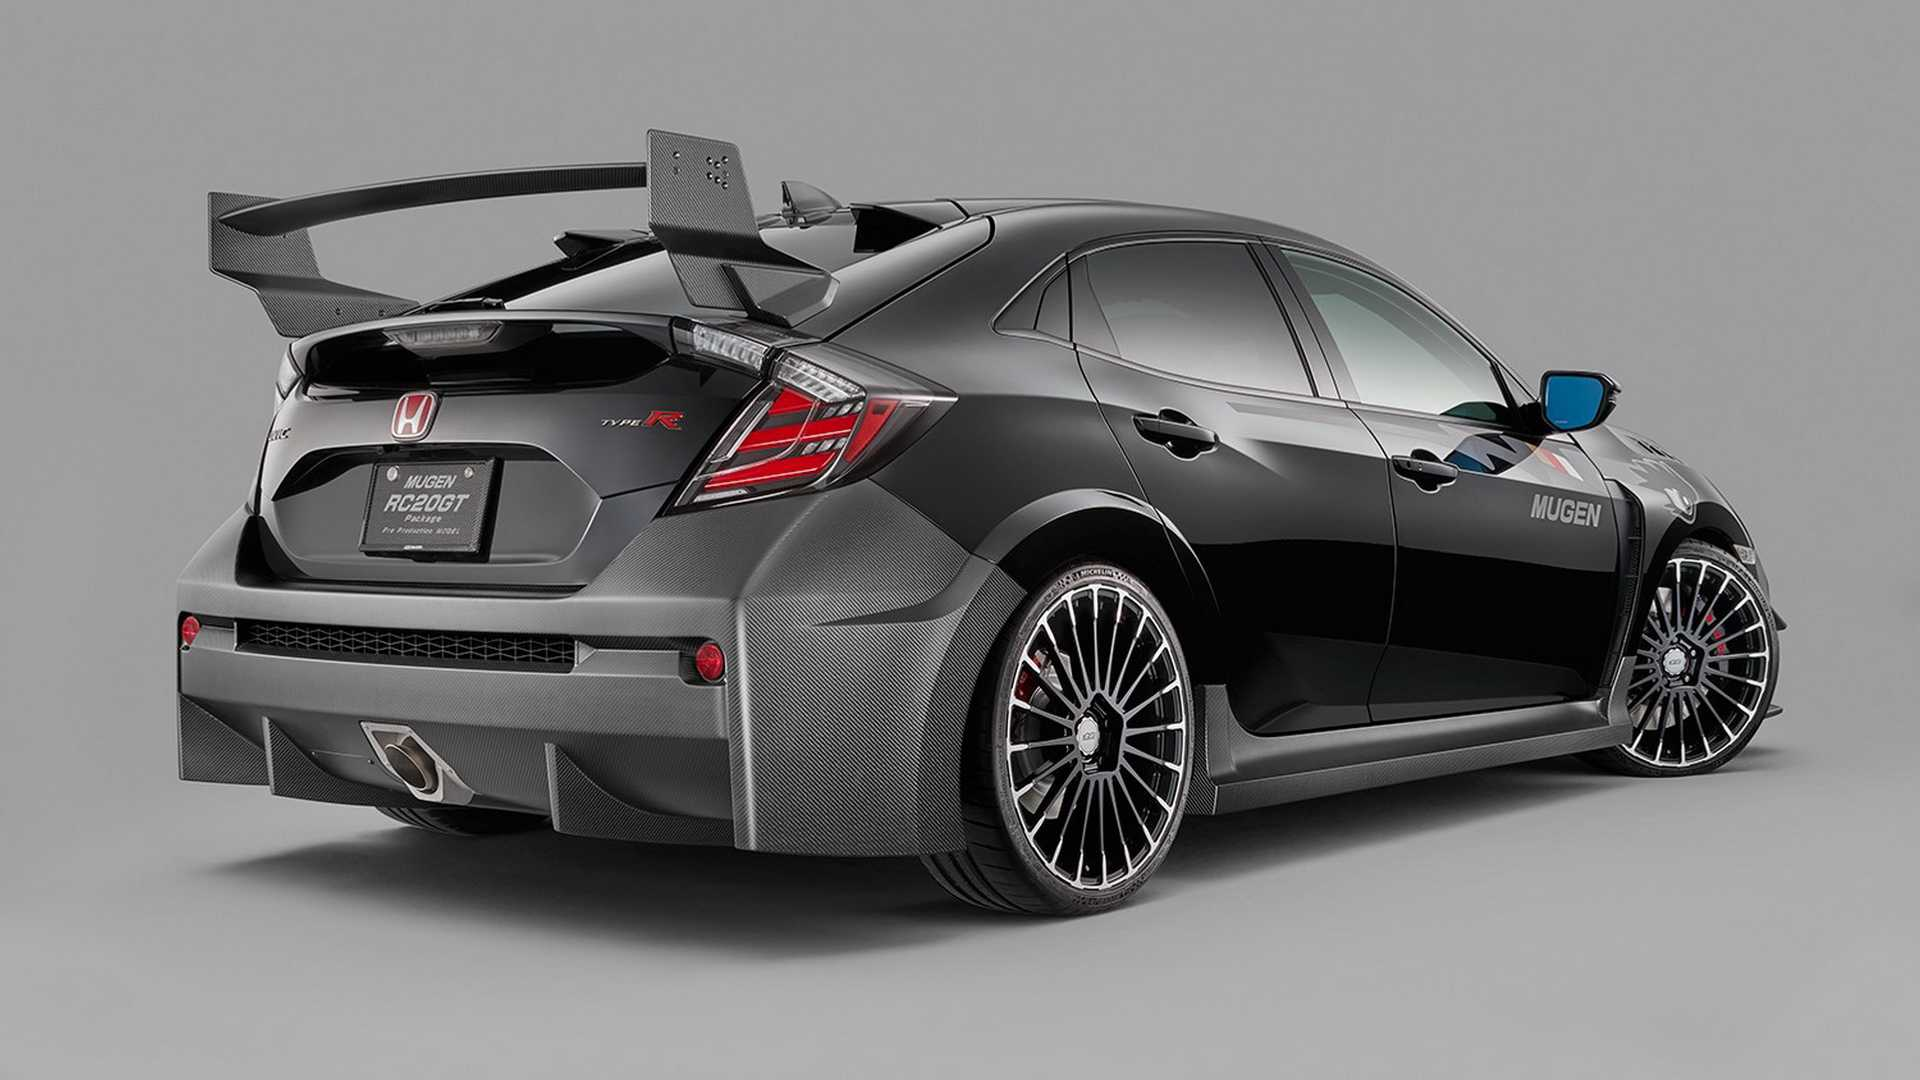 honda-civic-type-r-mugen-rc20gt-package-pre-production-model (2)